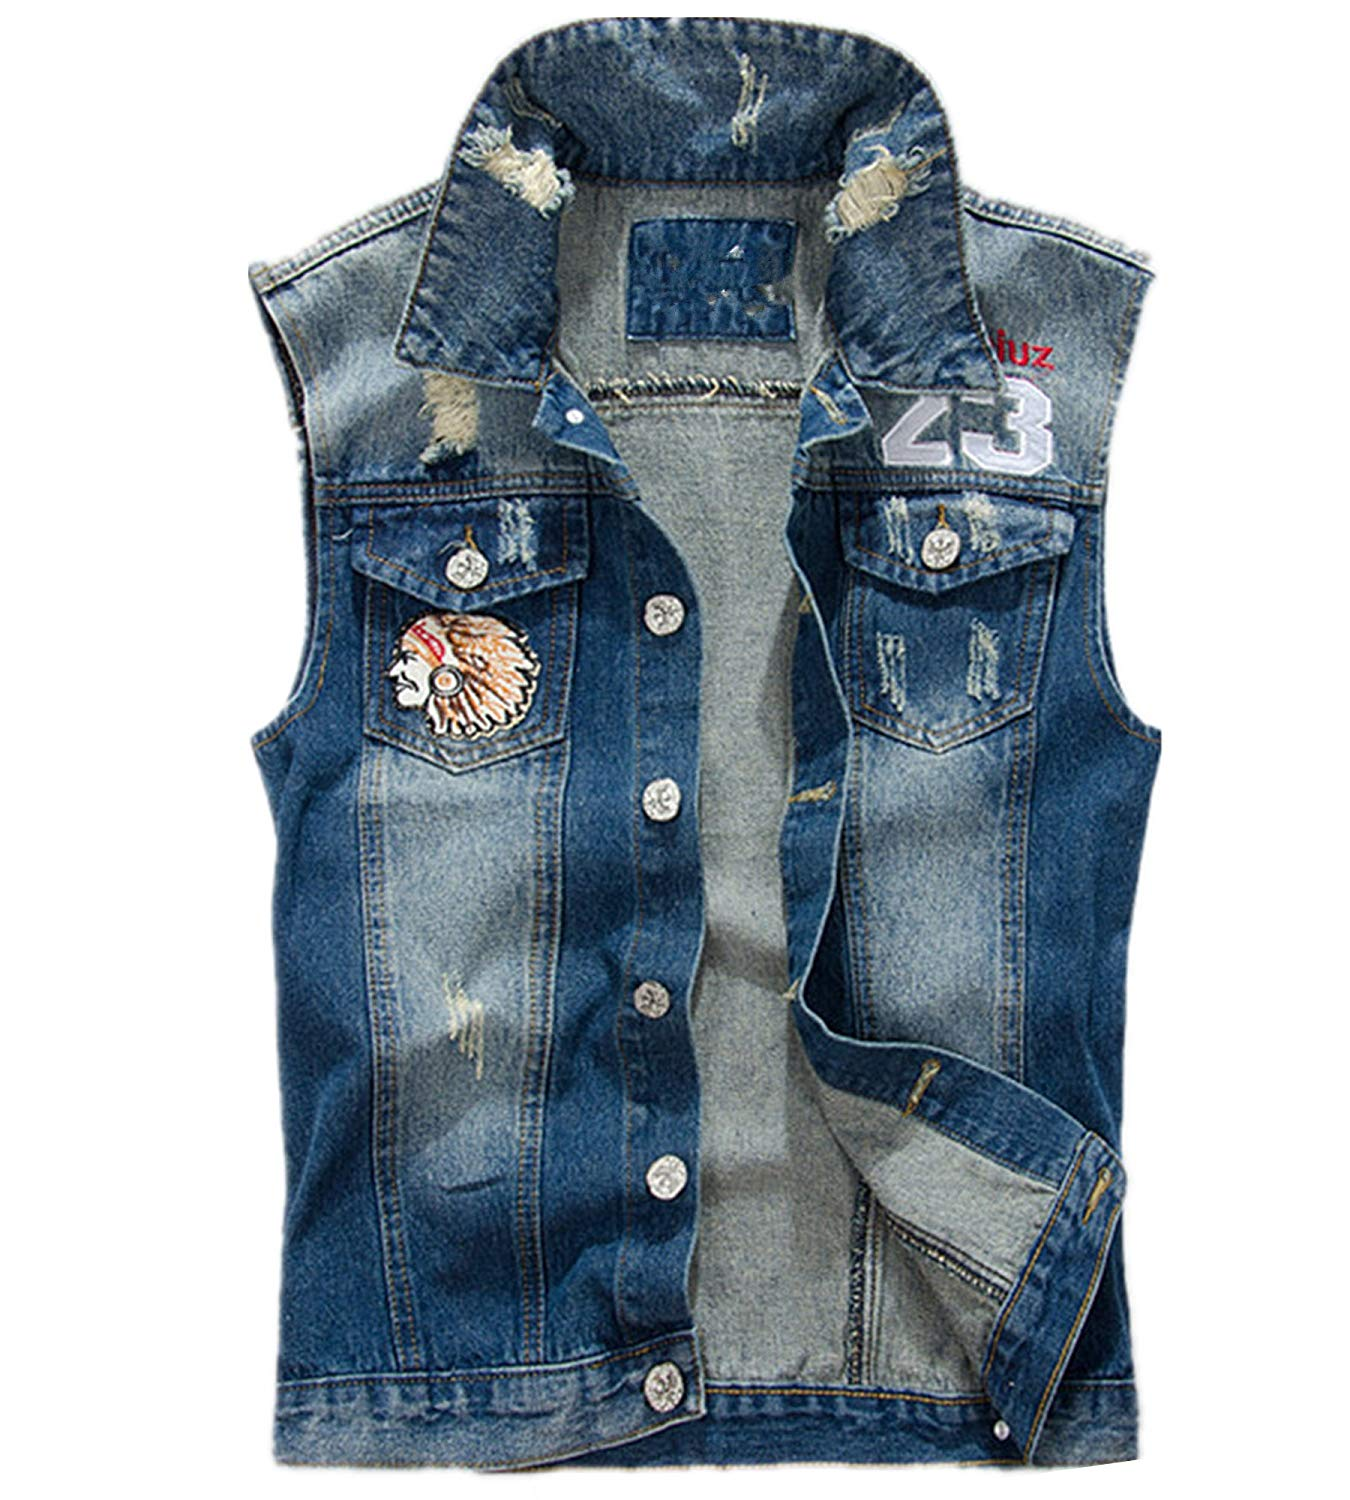 95548241c Allonly Men's Fashion Embroidered Floral Sleeveless Denim Jacket Stylish Denim  Jean Vest Tank Top